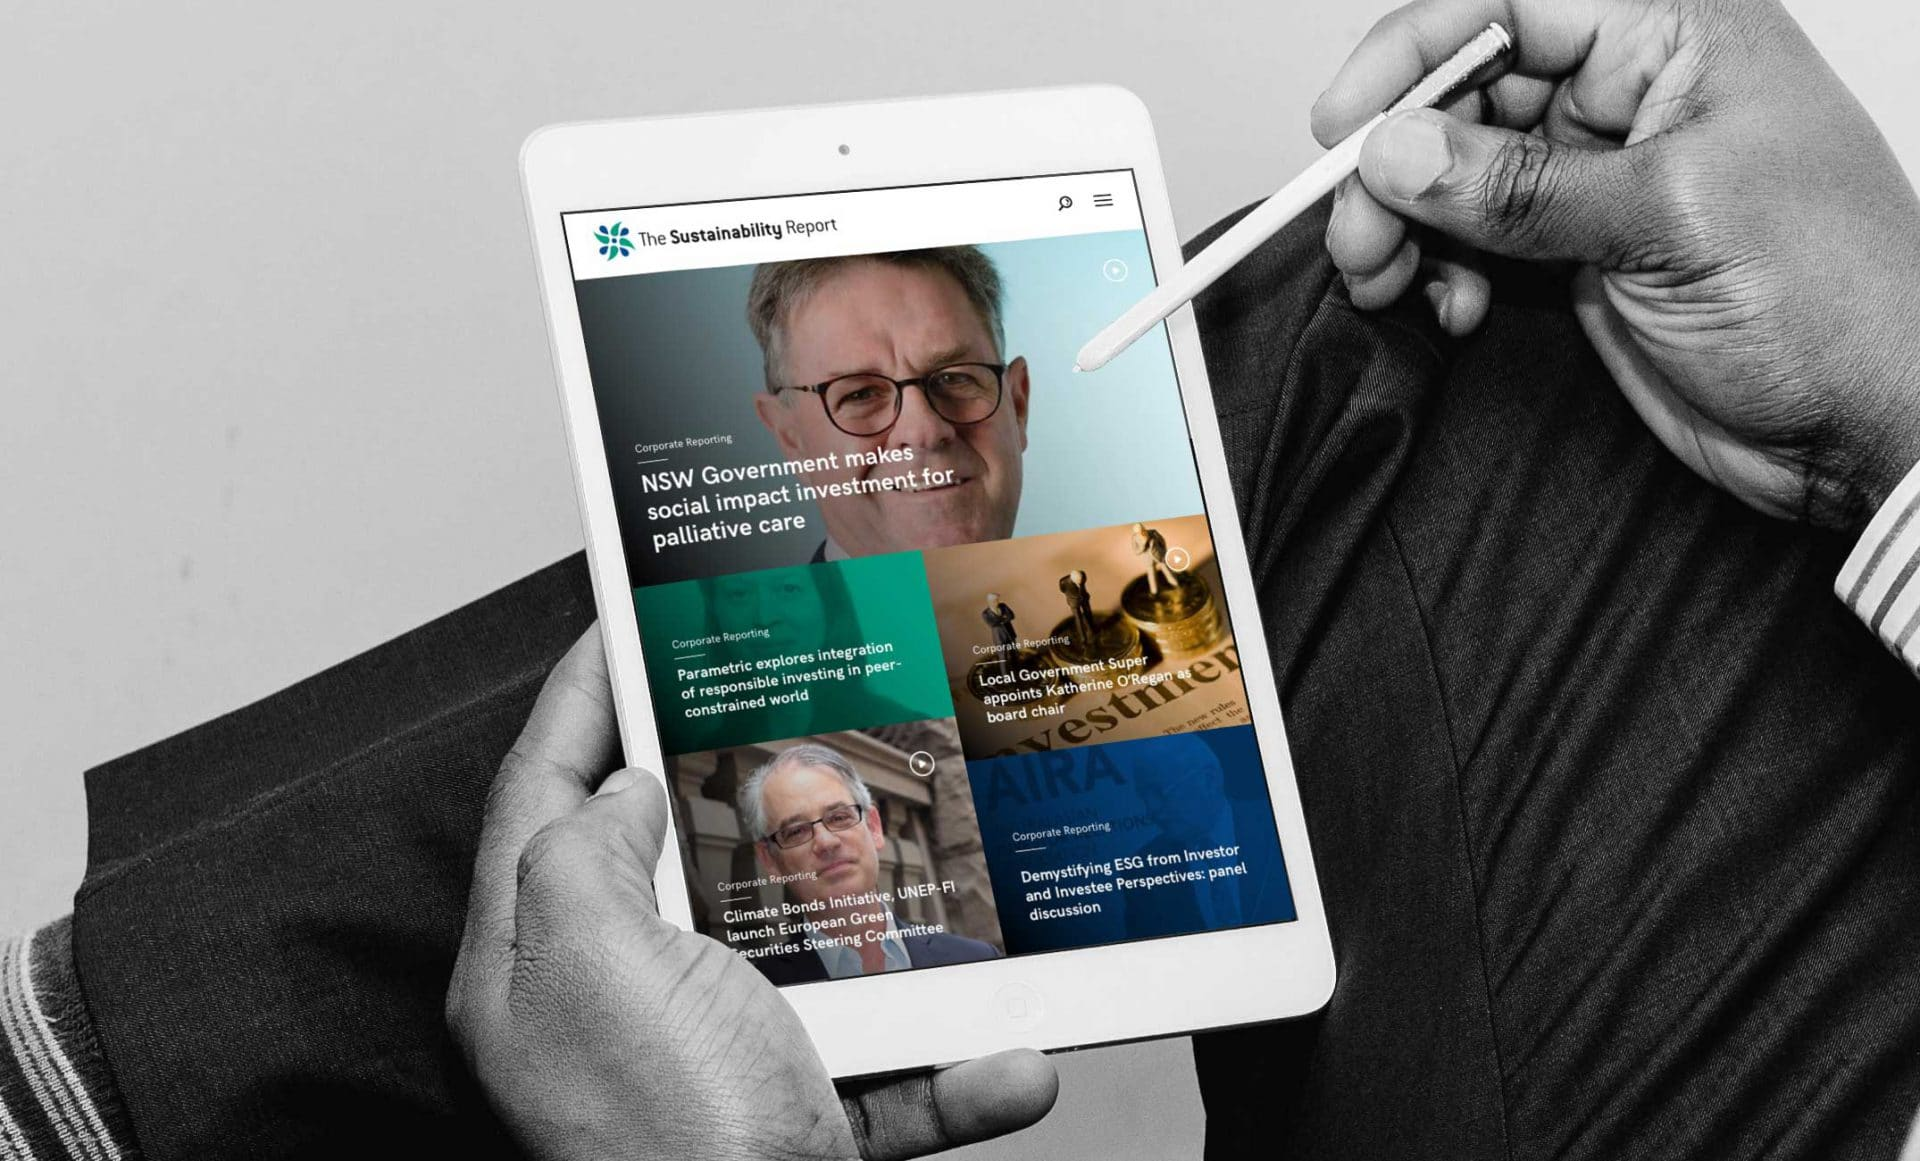 The Sustainability Report responsive website design on iPad in landscape view